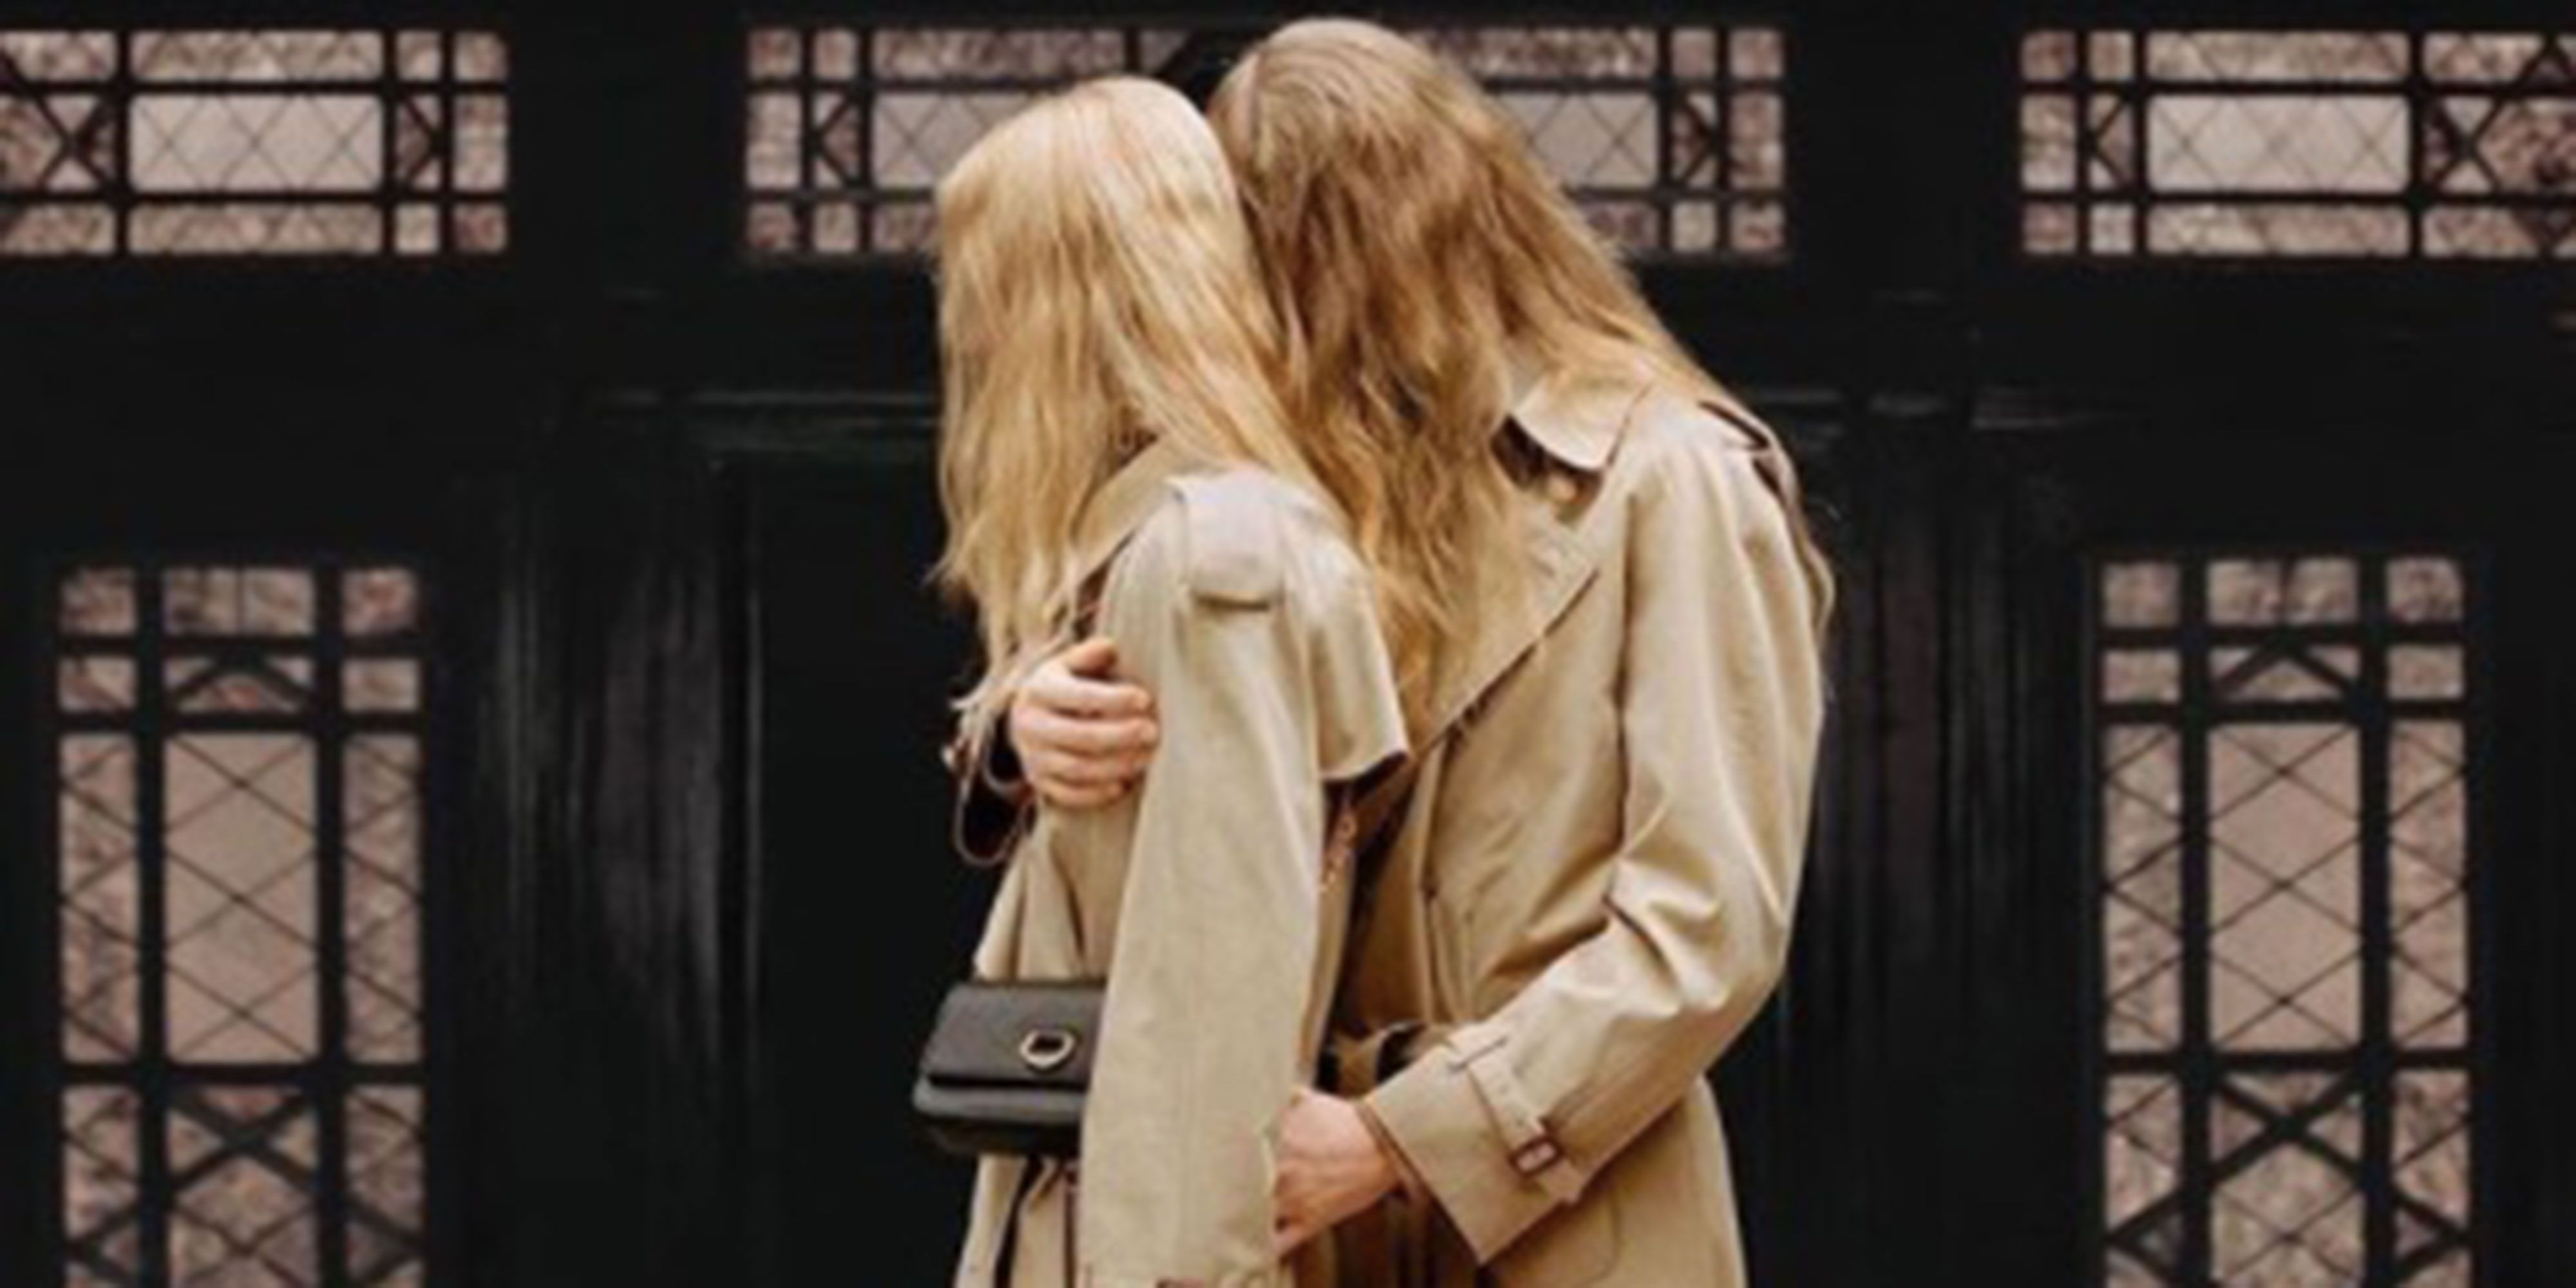 046c7d3c127b Your first look at Riccardo Tisci for Burberry